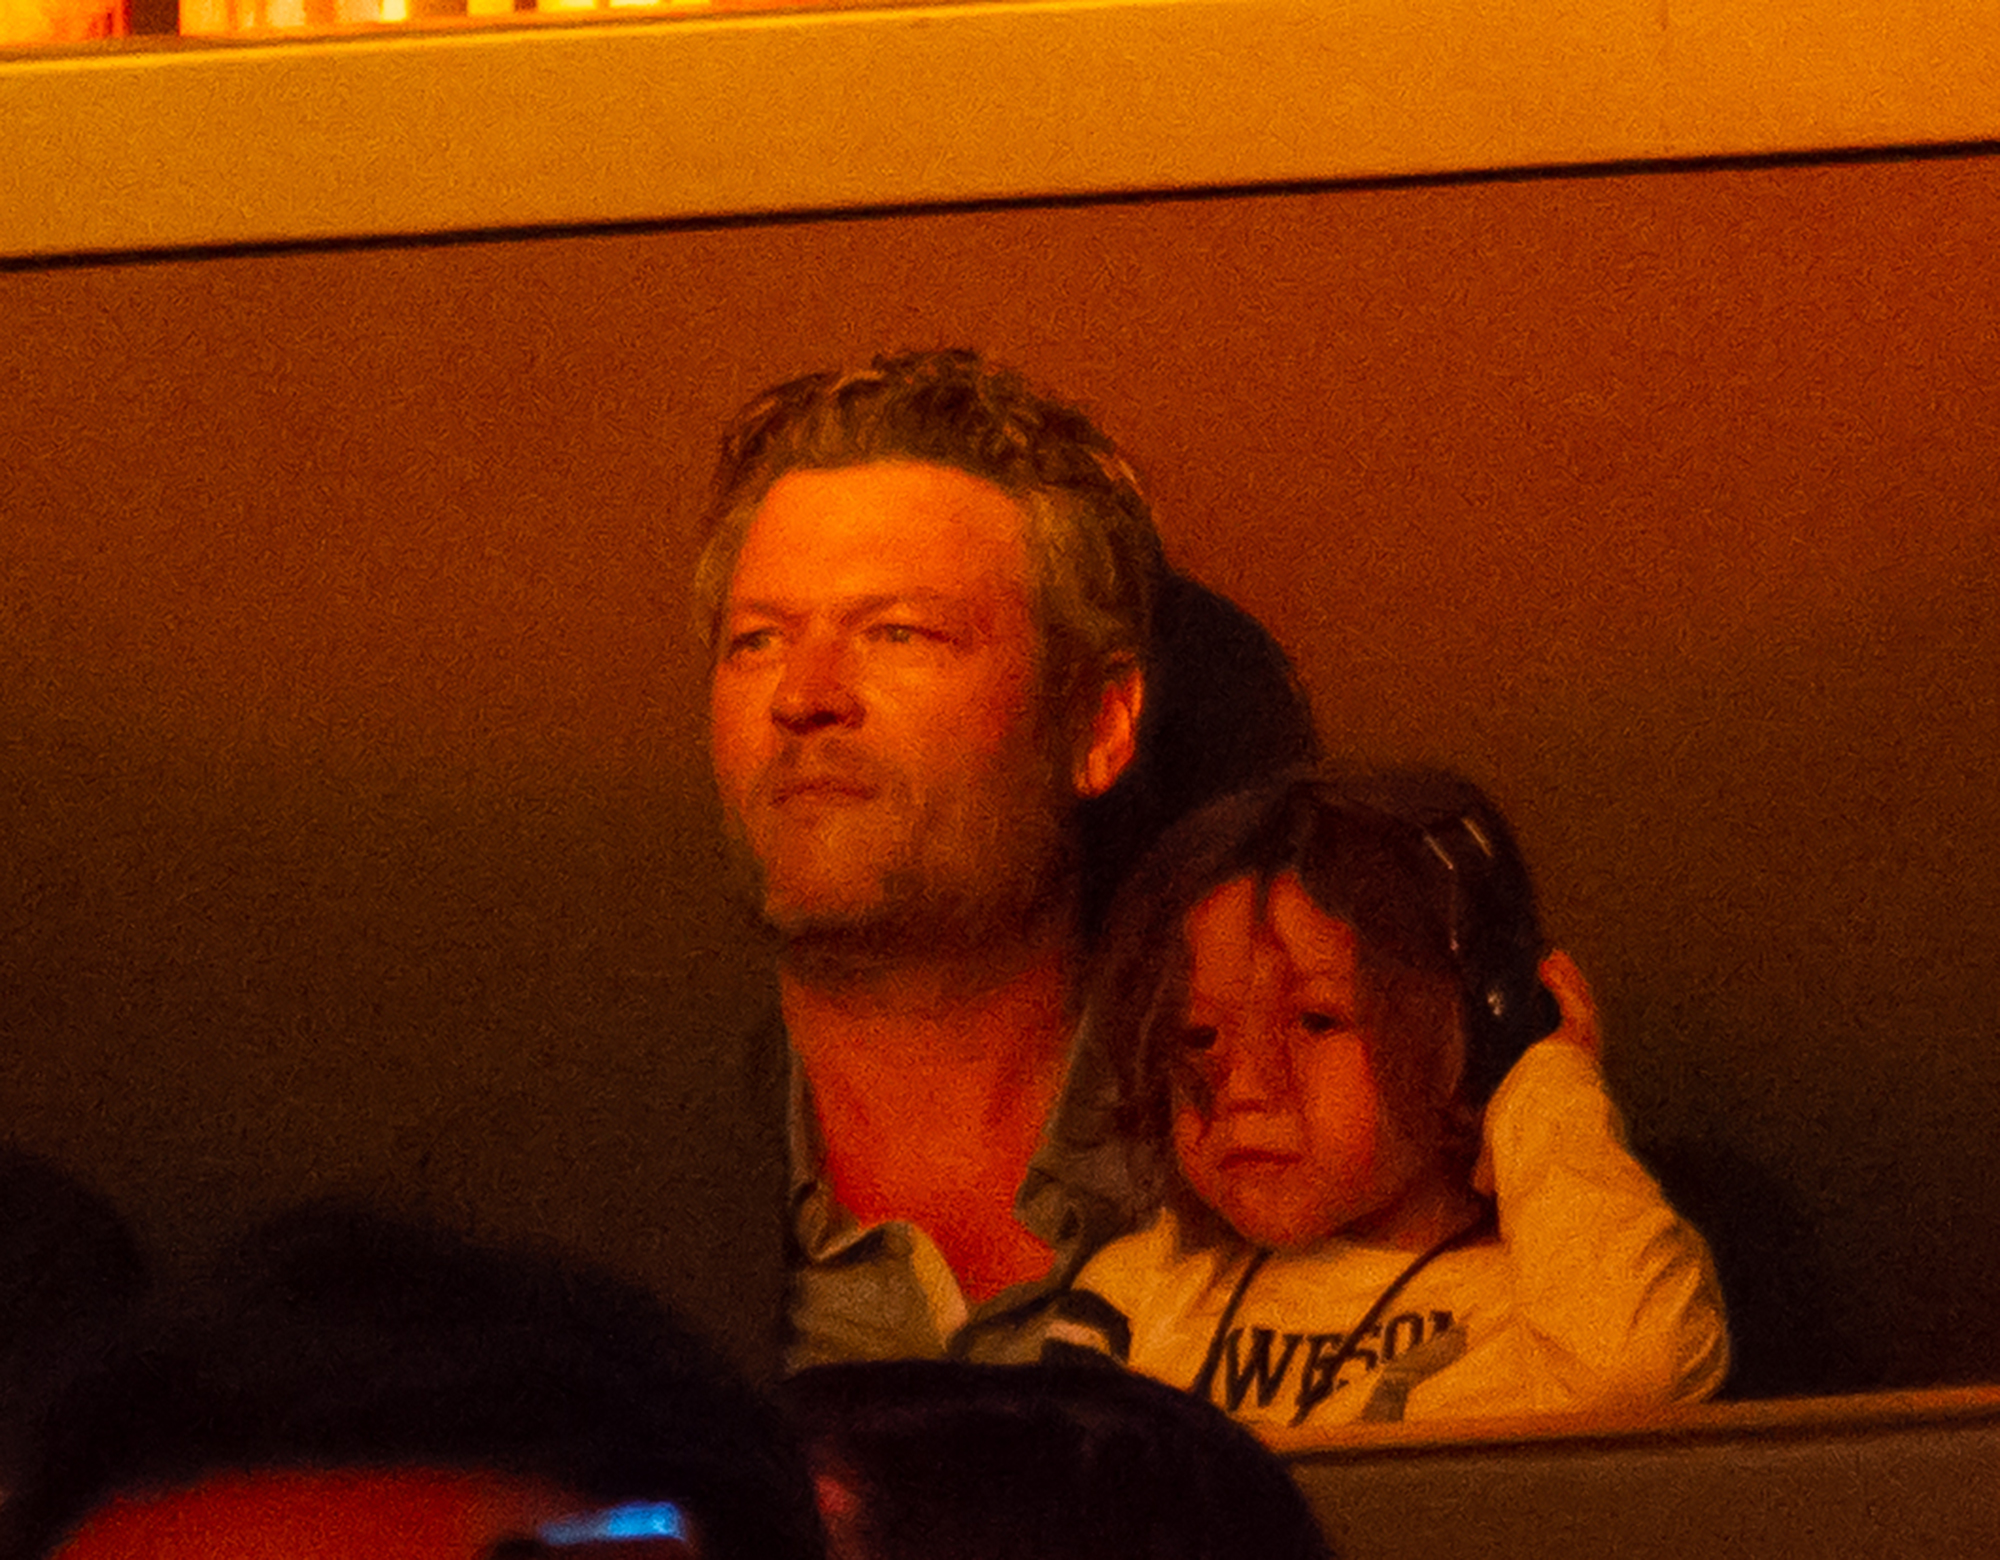 Blake Shelton And Gwen Stefanis Son Apollo Bowie Flynn Watch Her Perform At The Grand Opening Of The Gwen Stefani Just a Girl Residency At Planet Hollywood Resort And Casino In Las Vegas